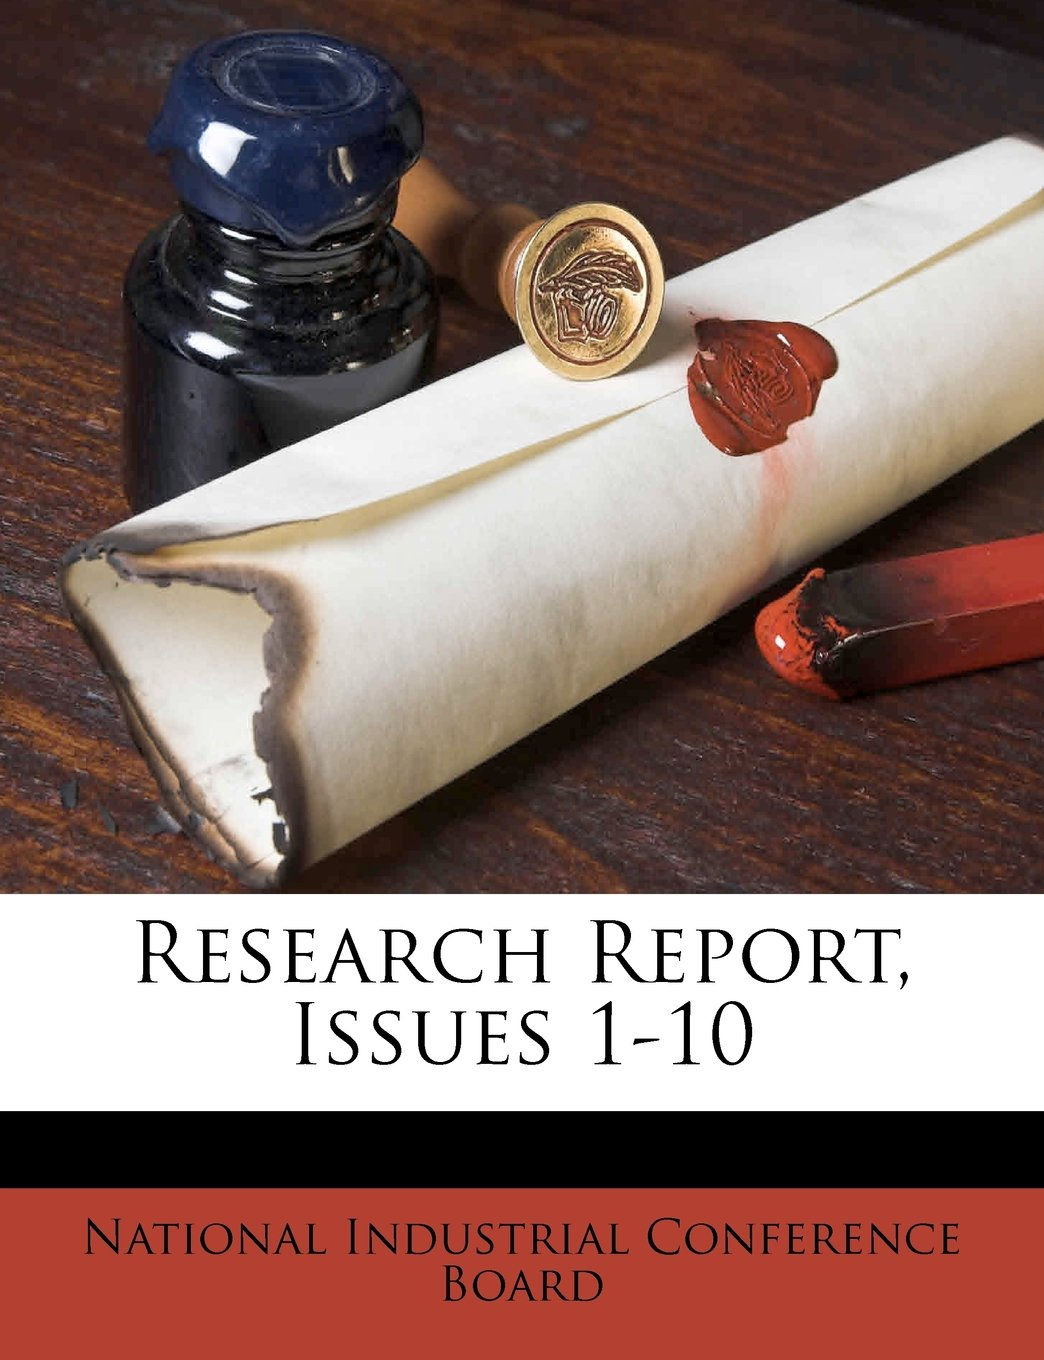 Research Report, Issues 1-10 pdf